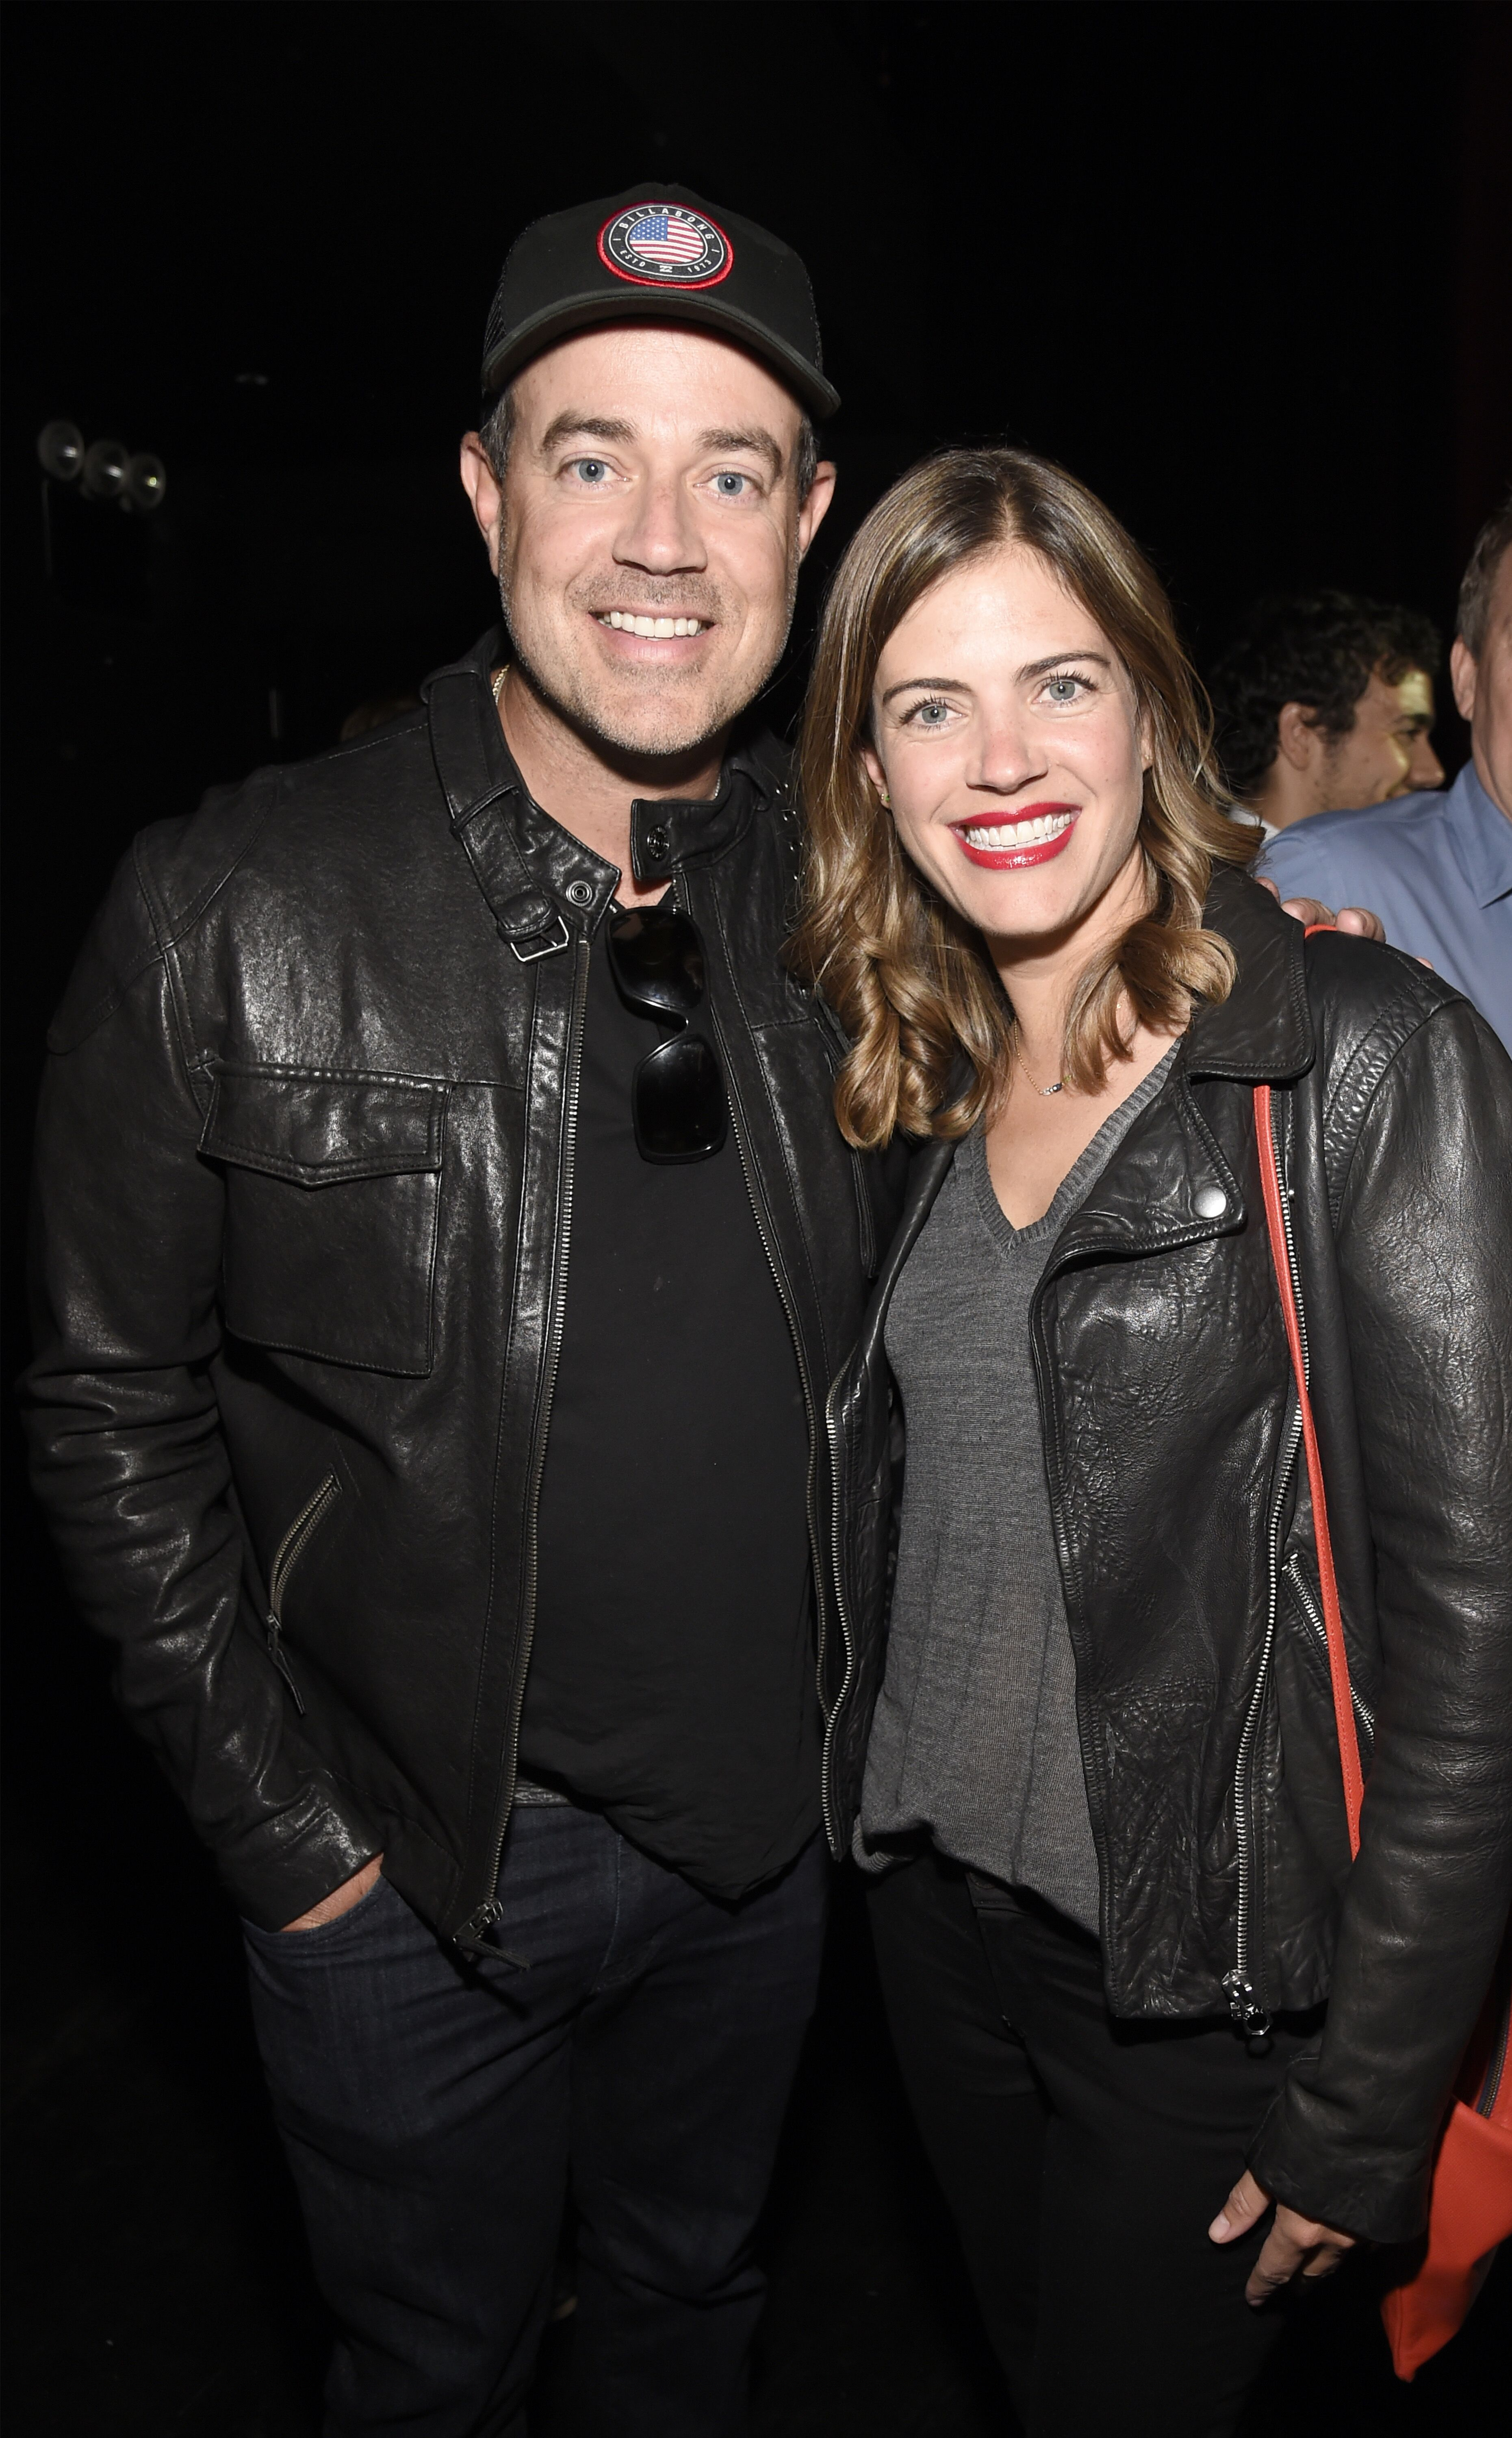 Carson and Siri Daly at SiriusXM's private concert with U2 in 2018 | Source: Getty Images